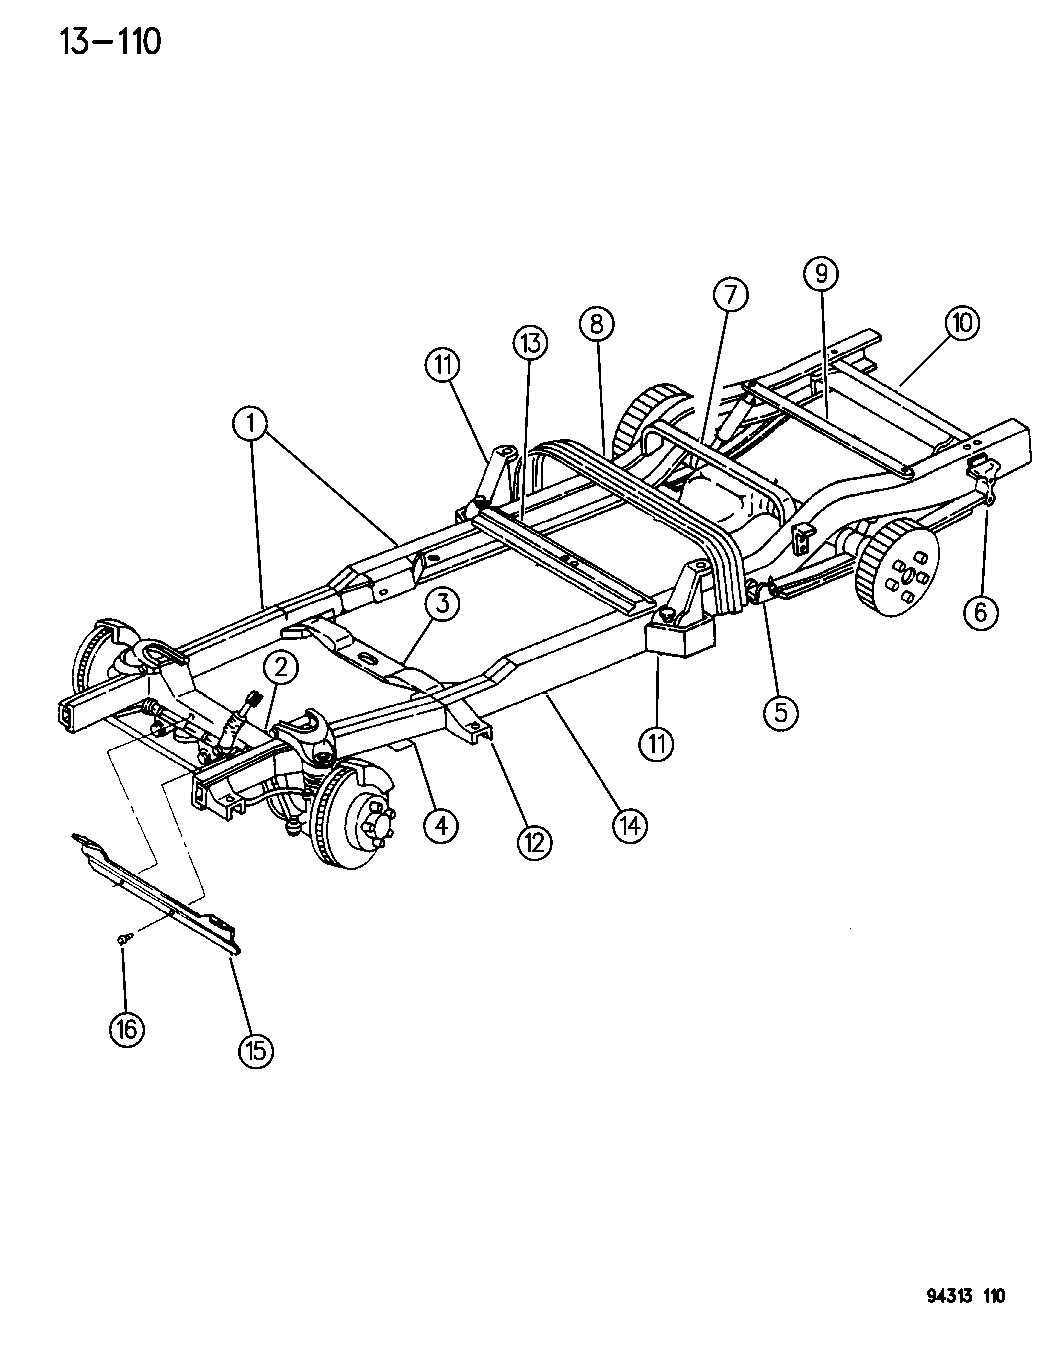 Diagram Dodge Dakota Frame